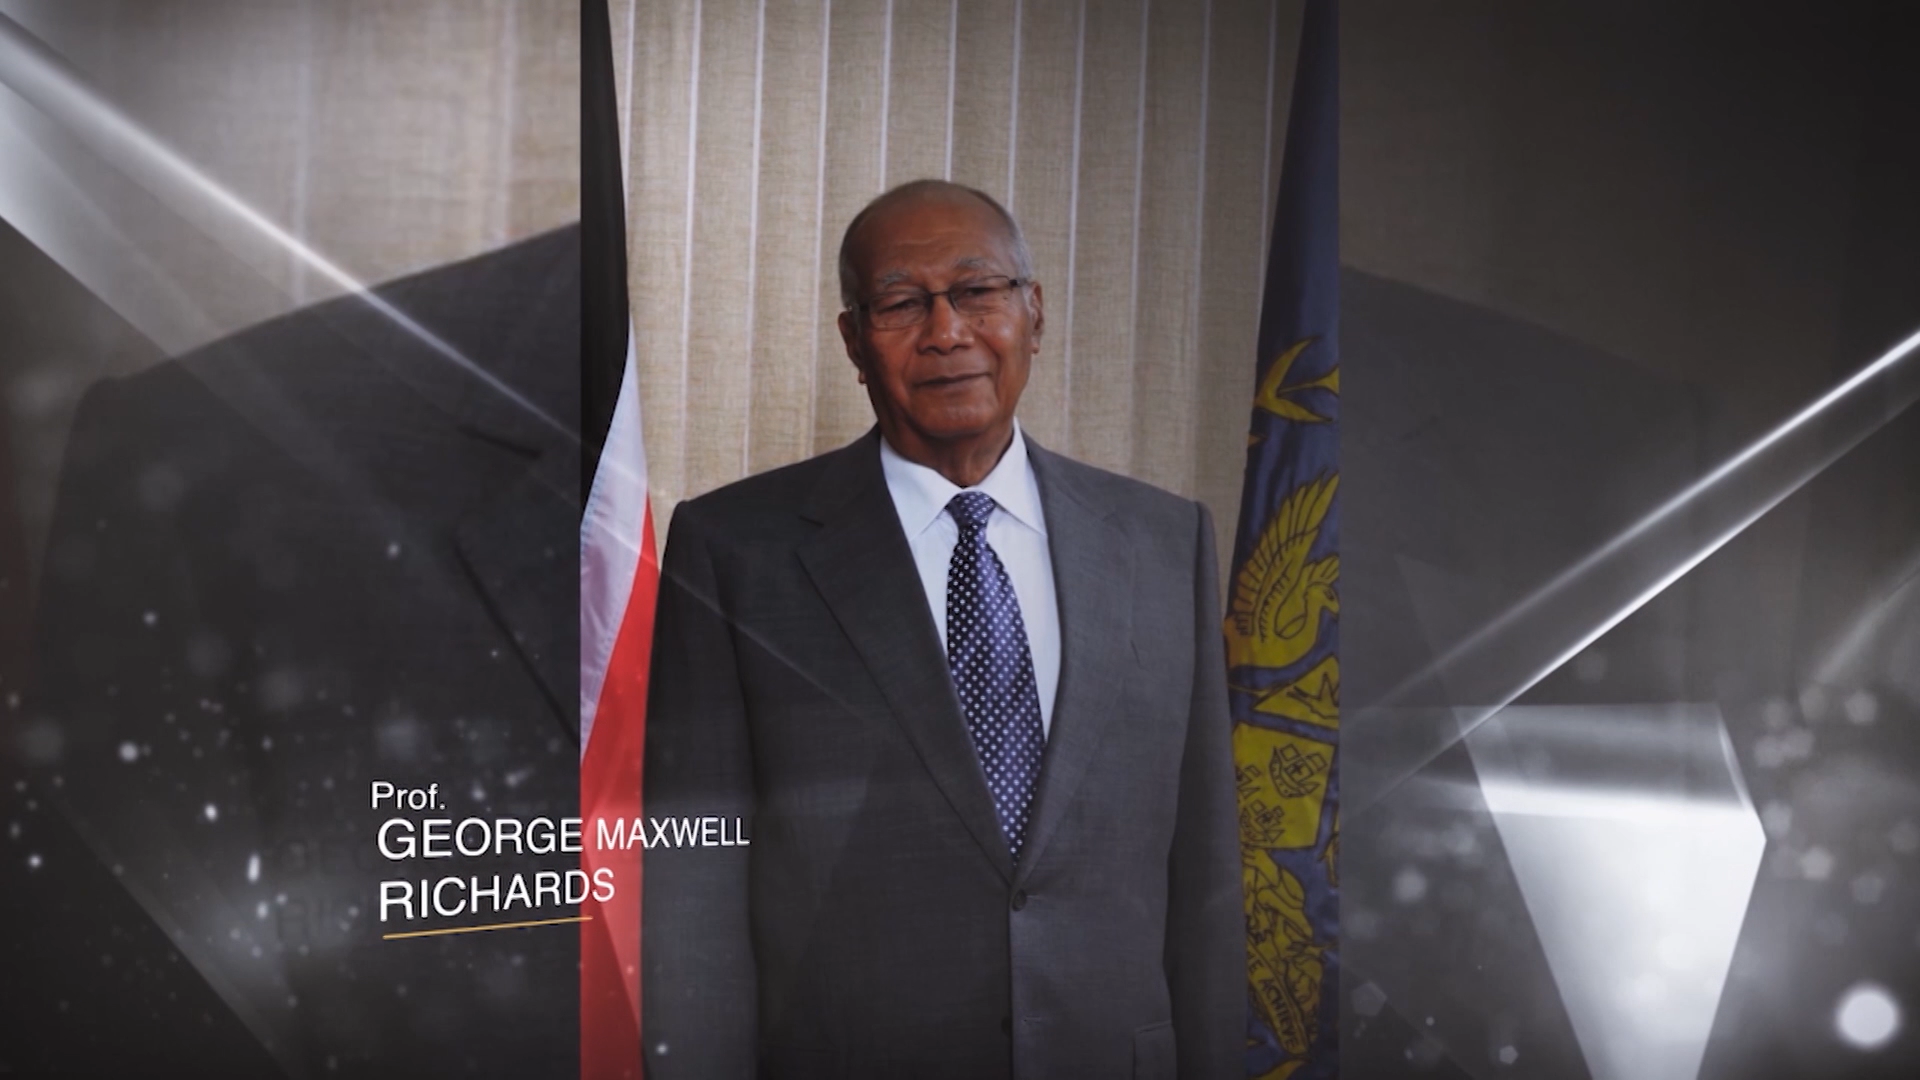 PRESIDENTS OF THE PAST – Prof. George Maxwell Richards